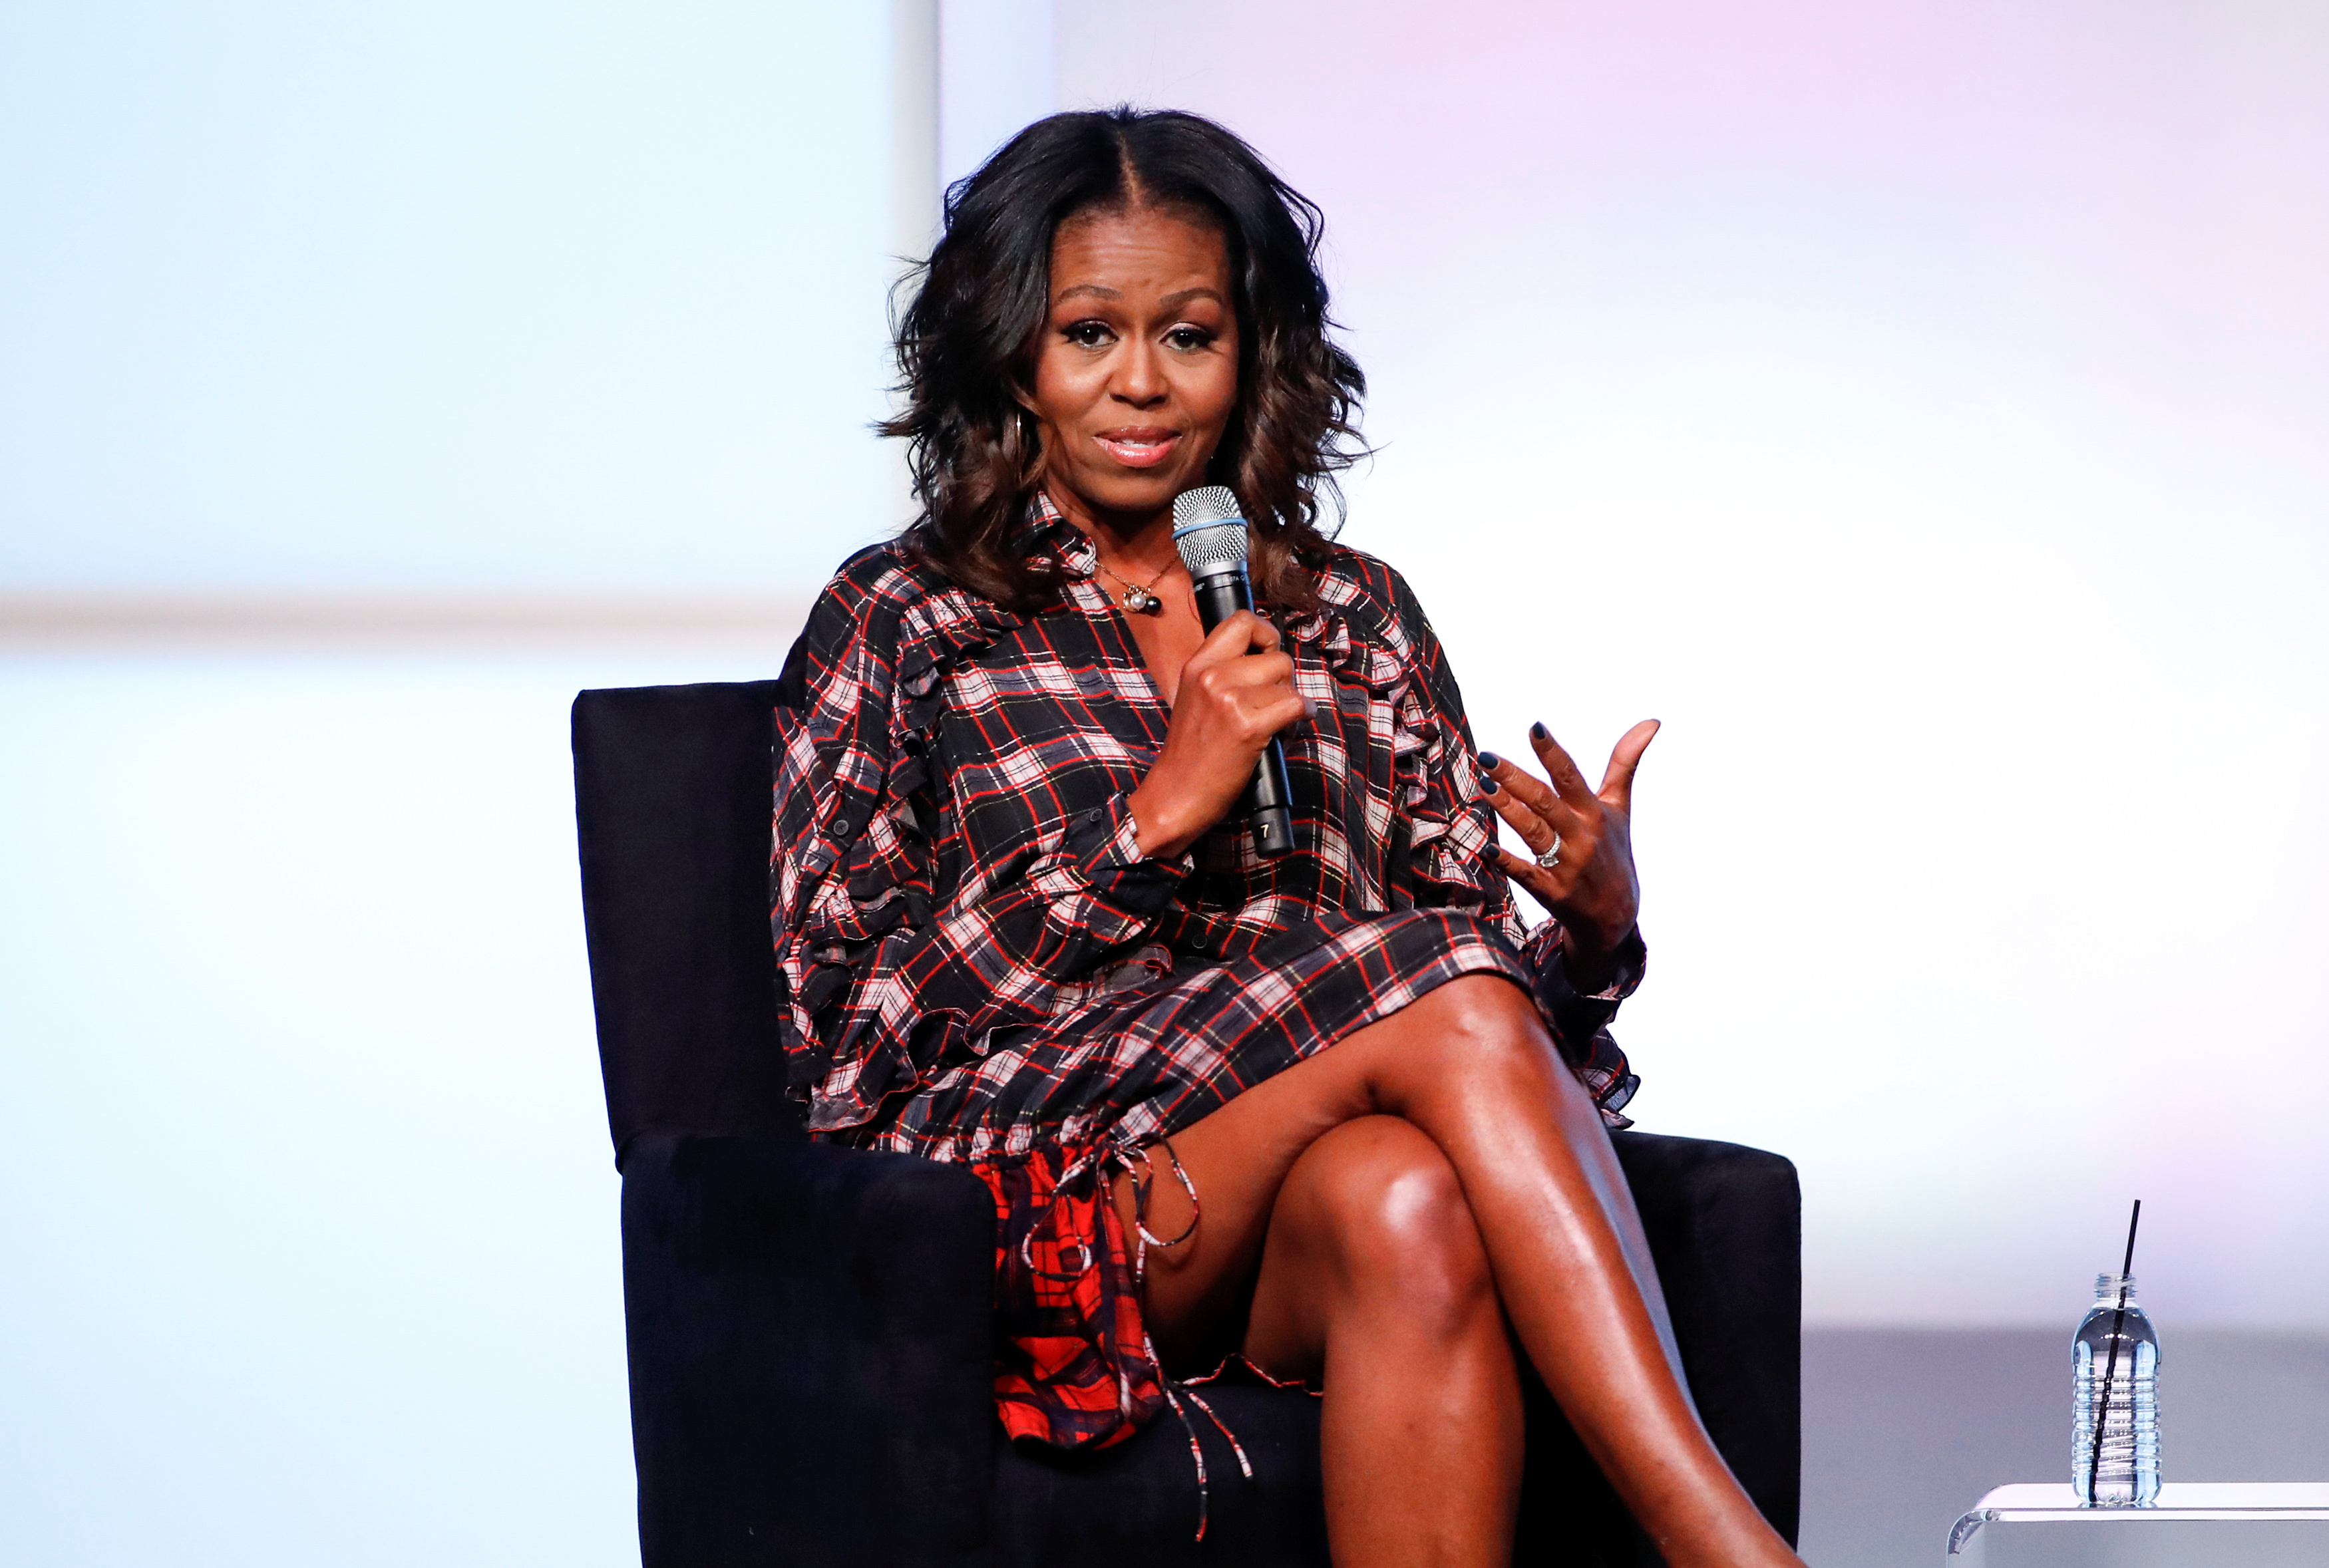 Former First Lady Michelle Obama speaks during the second day of the inaugural Obama Foundation Summit in Chicago, on Nov. 1, 2017.